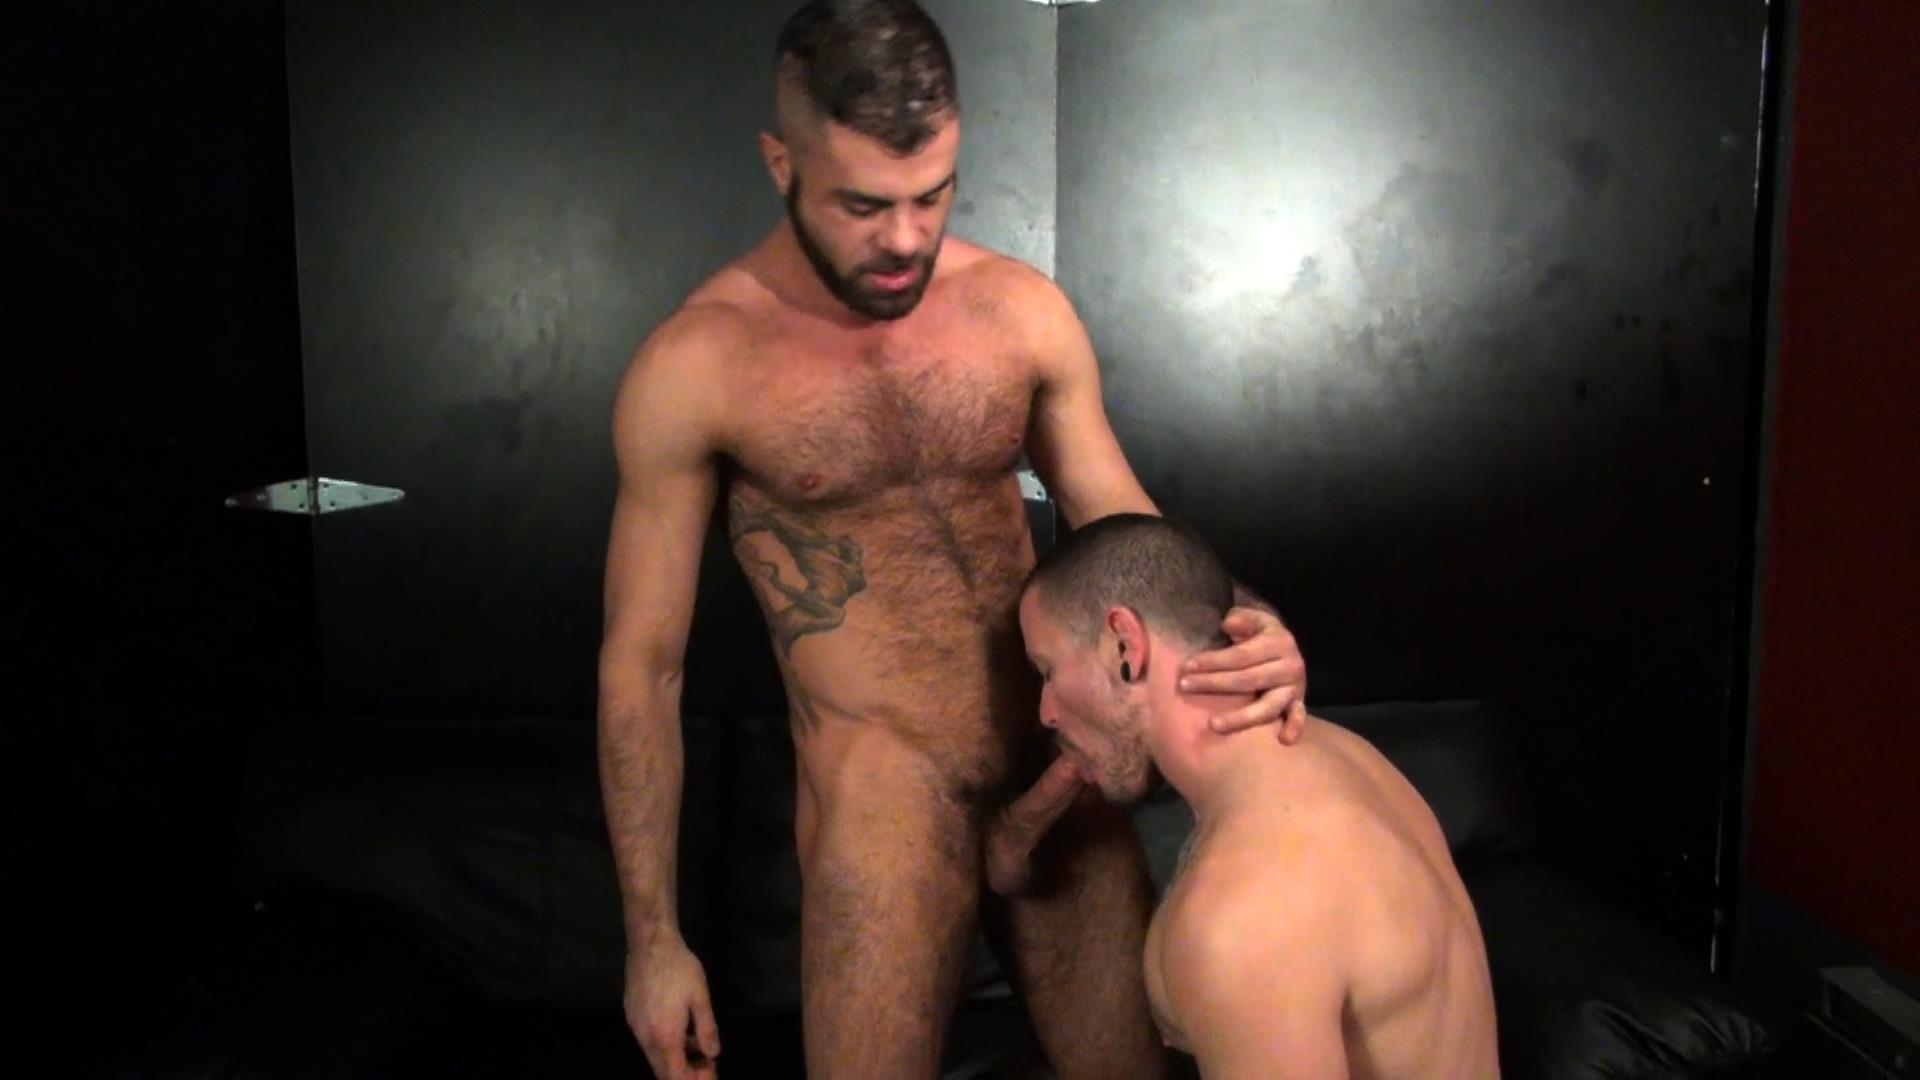 Raw-Fuck-Club-Max-Cameron-and-Markus-Isaacs-Hairy-Muscle-Bareback-Breeding-BBBH-Amateur-Gay-Porn-6 Max Cameron and Markus Isaacs Breeding Each Other's Hairy Ass